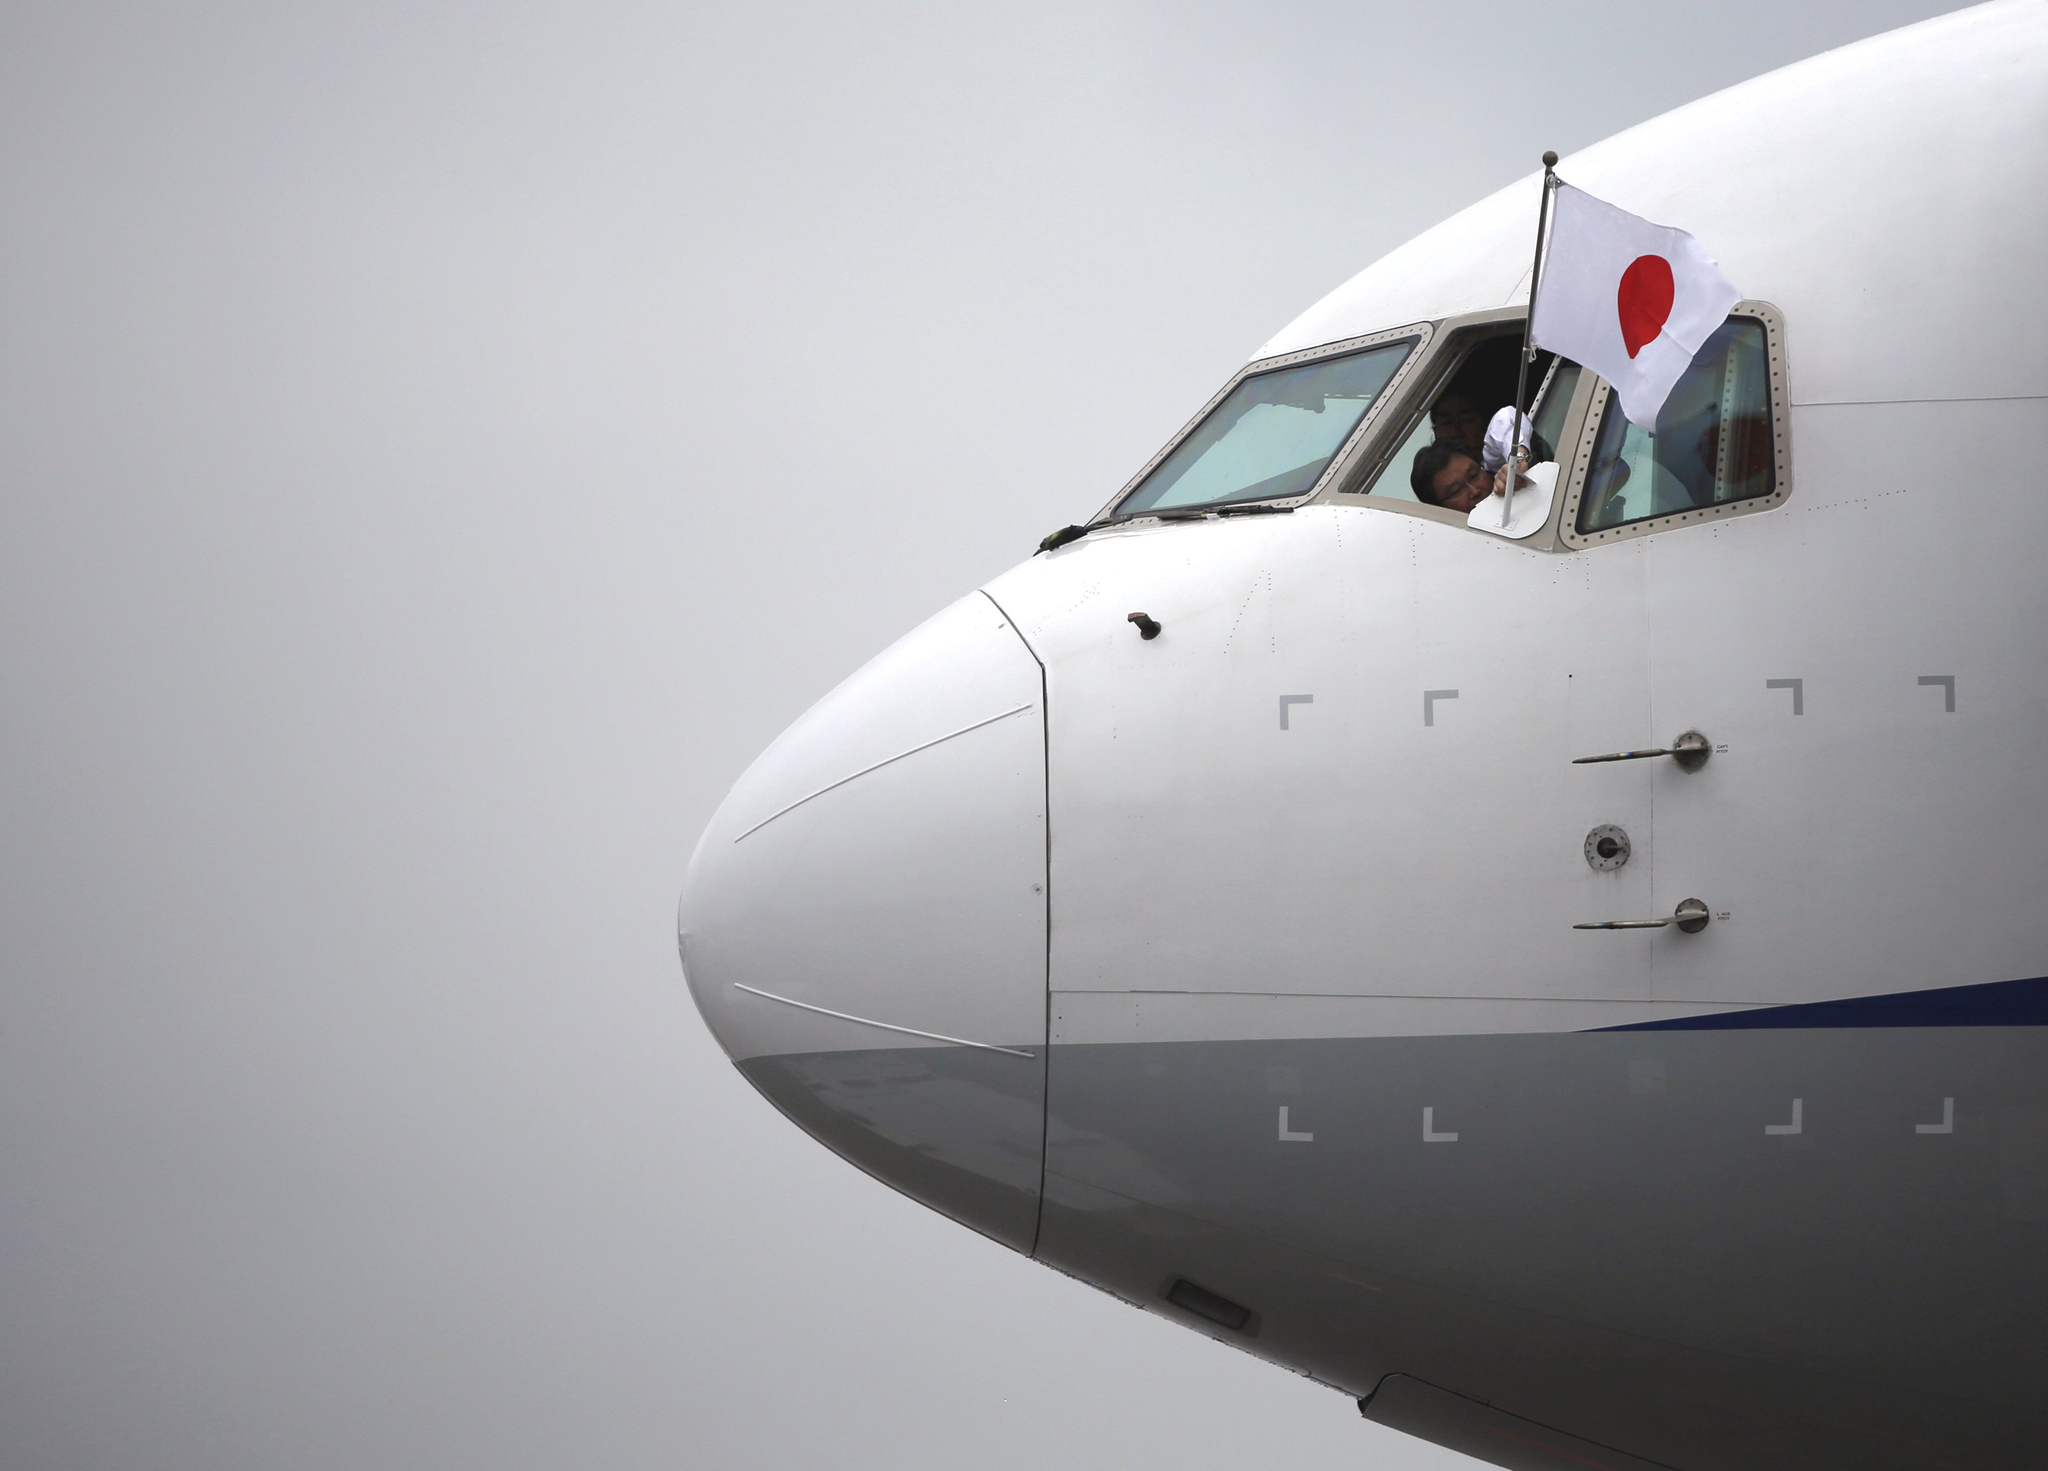 A flight crew member attaches a Japanese national flag on the airplane for Emperor Akihito and Empress Michiko's special flight to Palau before it's take off at Haneda international airport in Tokyo